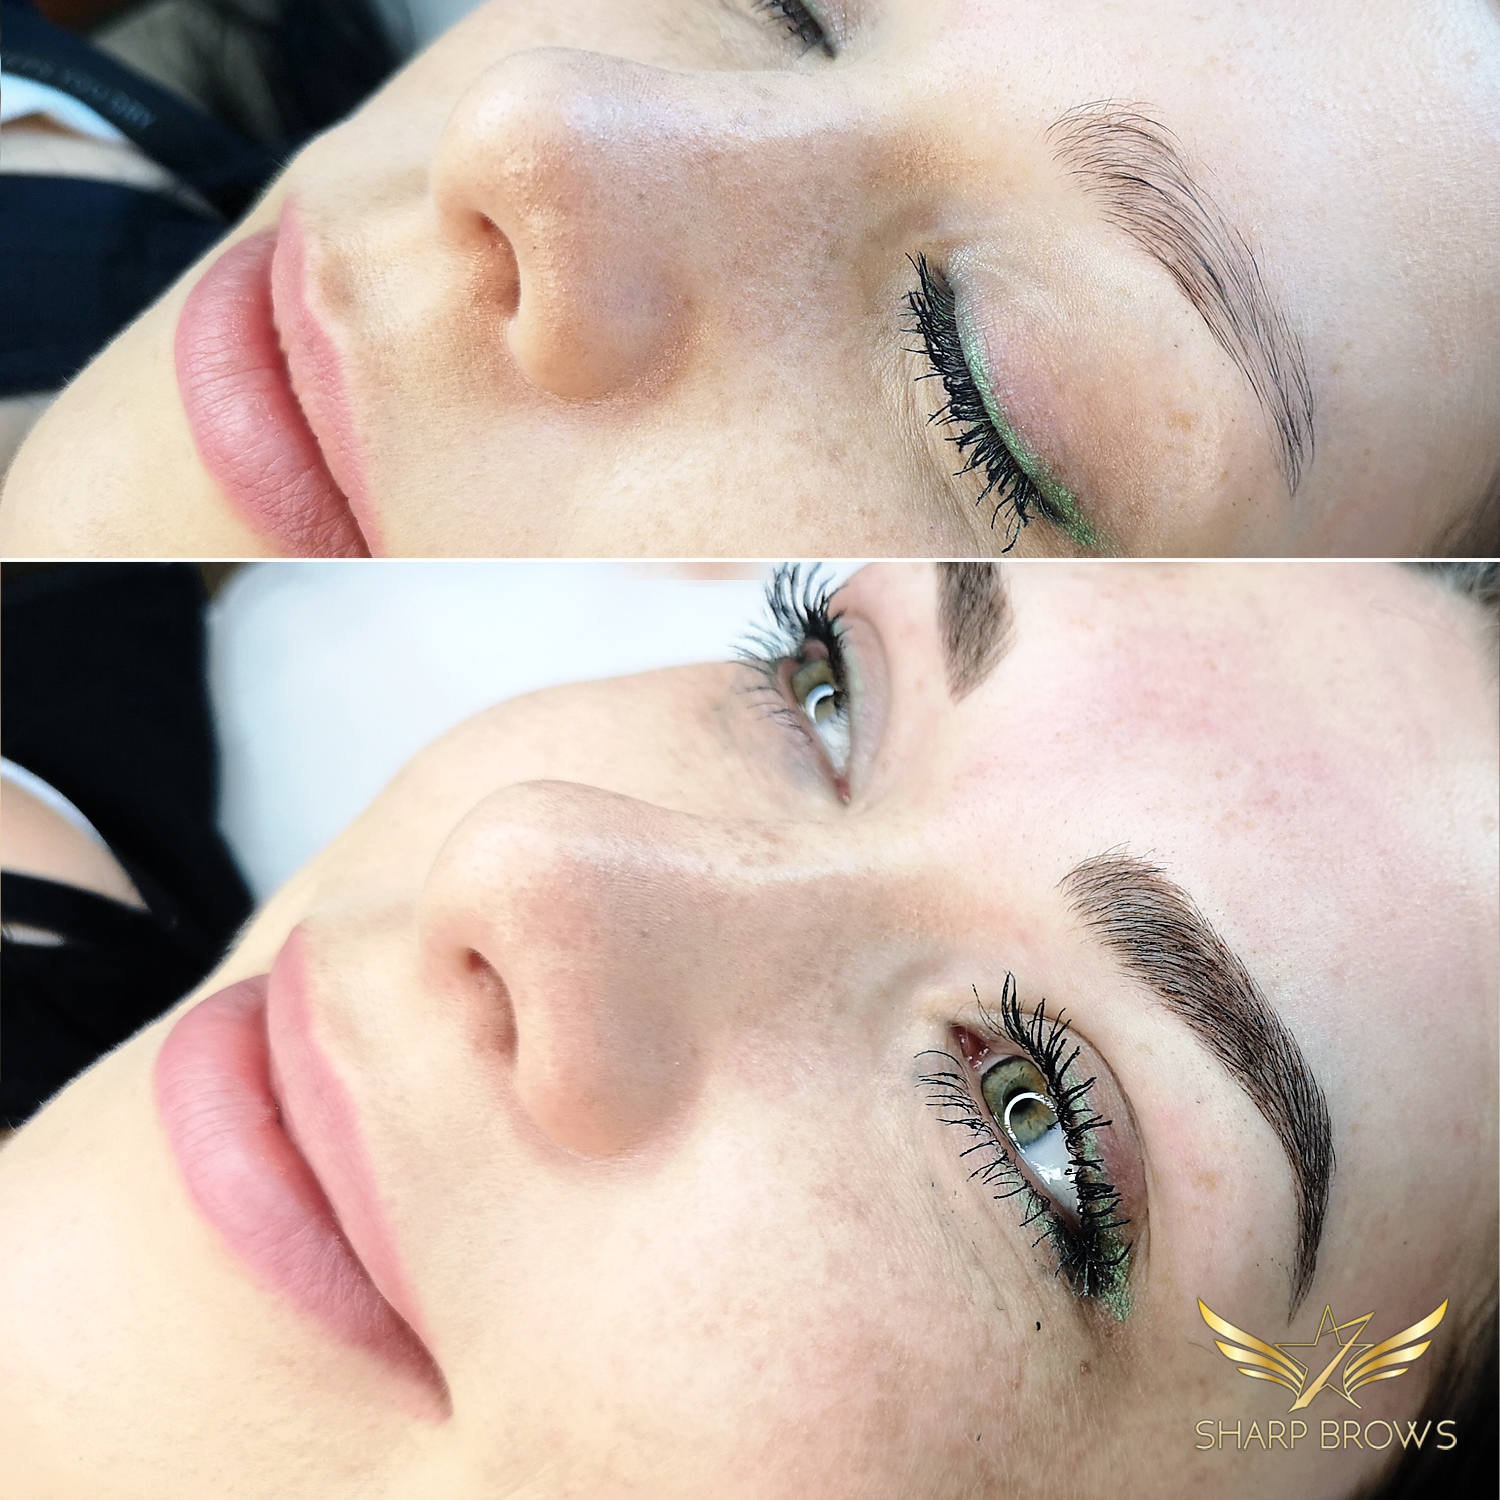 Light microblading. This beautiful woman became even more beautiful with Light microblading.